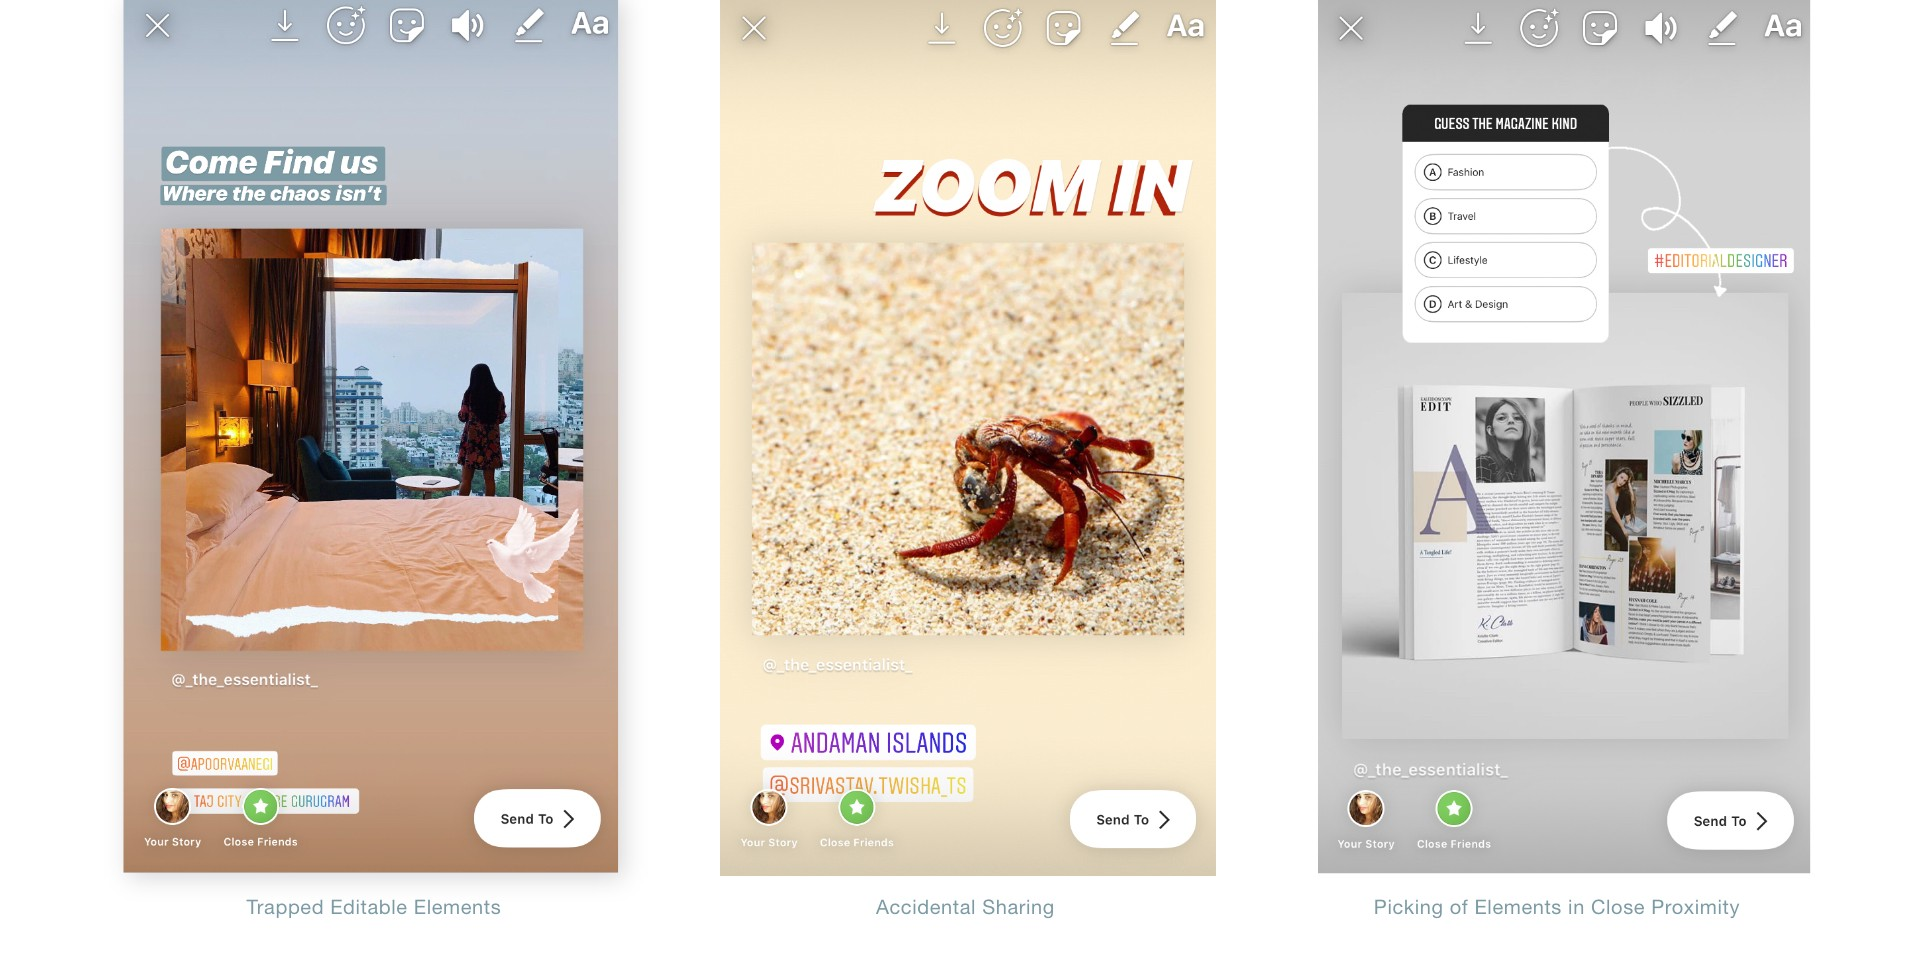 How to Make an Aesthetic Instagram Story in Simple Ways